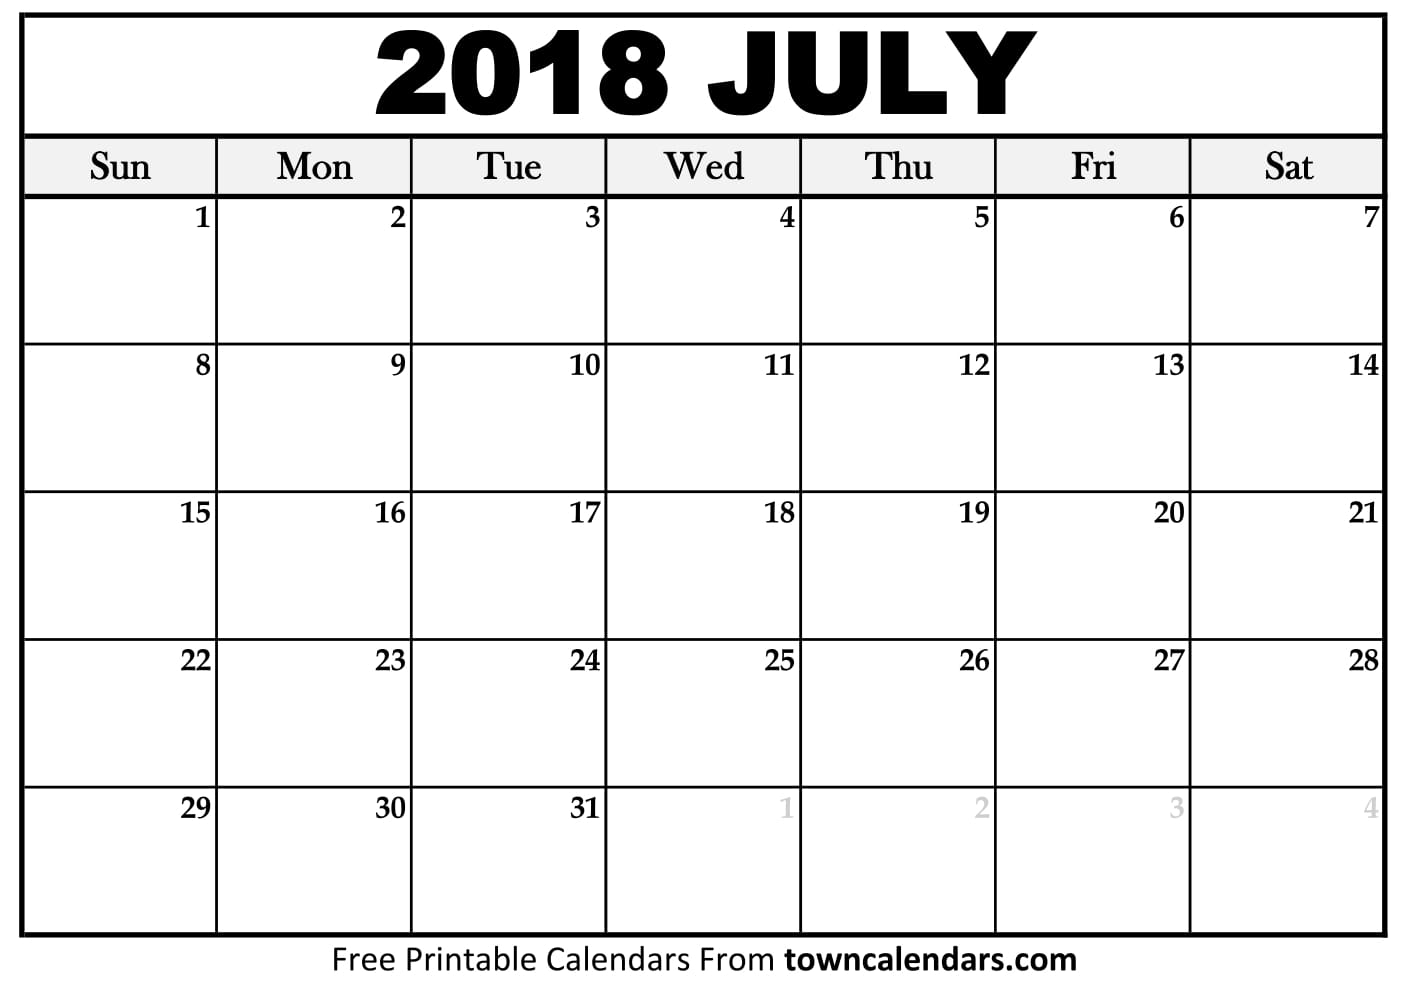 July 2018 Calendar July Calendar 2018 Printable Template